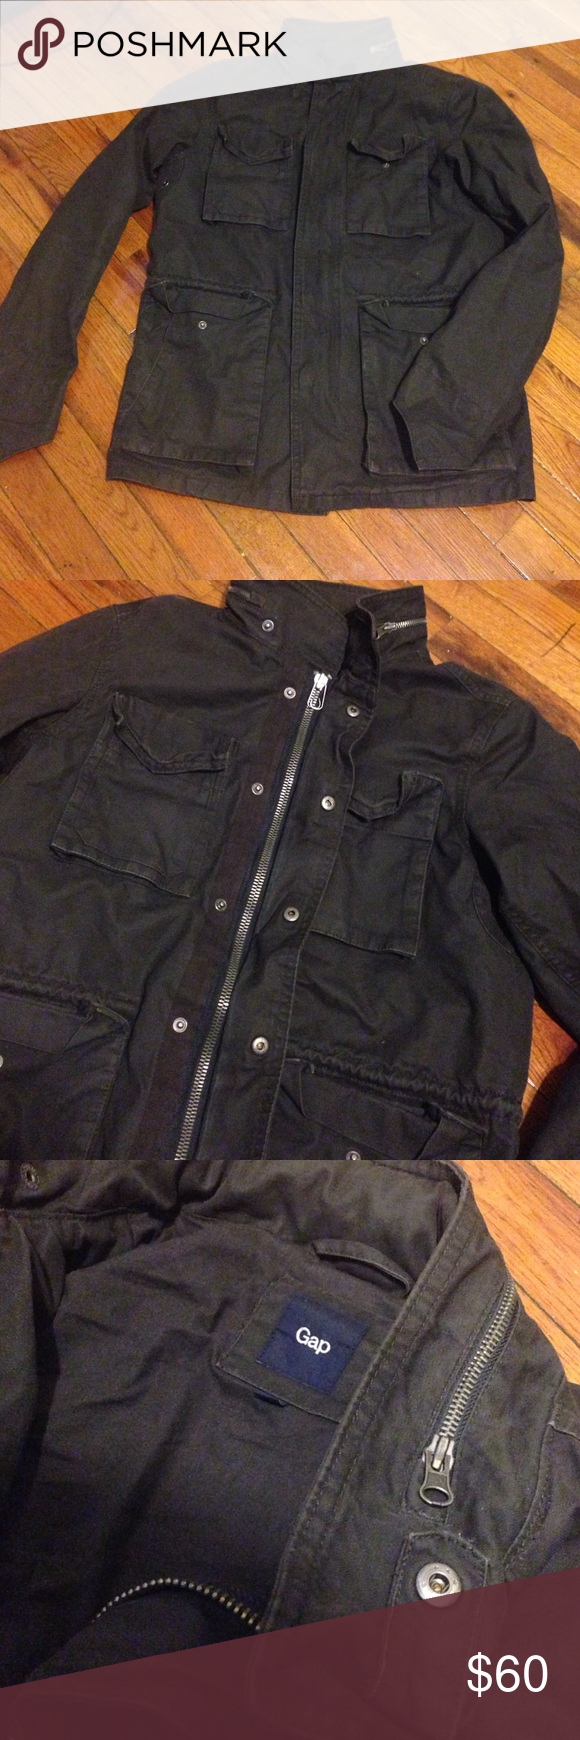 Vintage GAP jacket Has 7 pockets in the front . Has. Hood hidden inside the zipper. Could button it up and zip it up as well. Great condition and perfect jacket GAP Jackets & Coats Military & Field